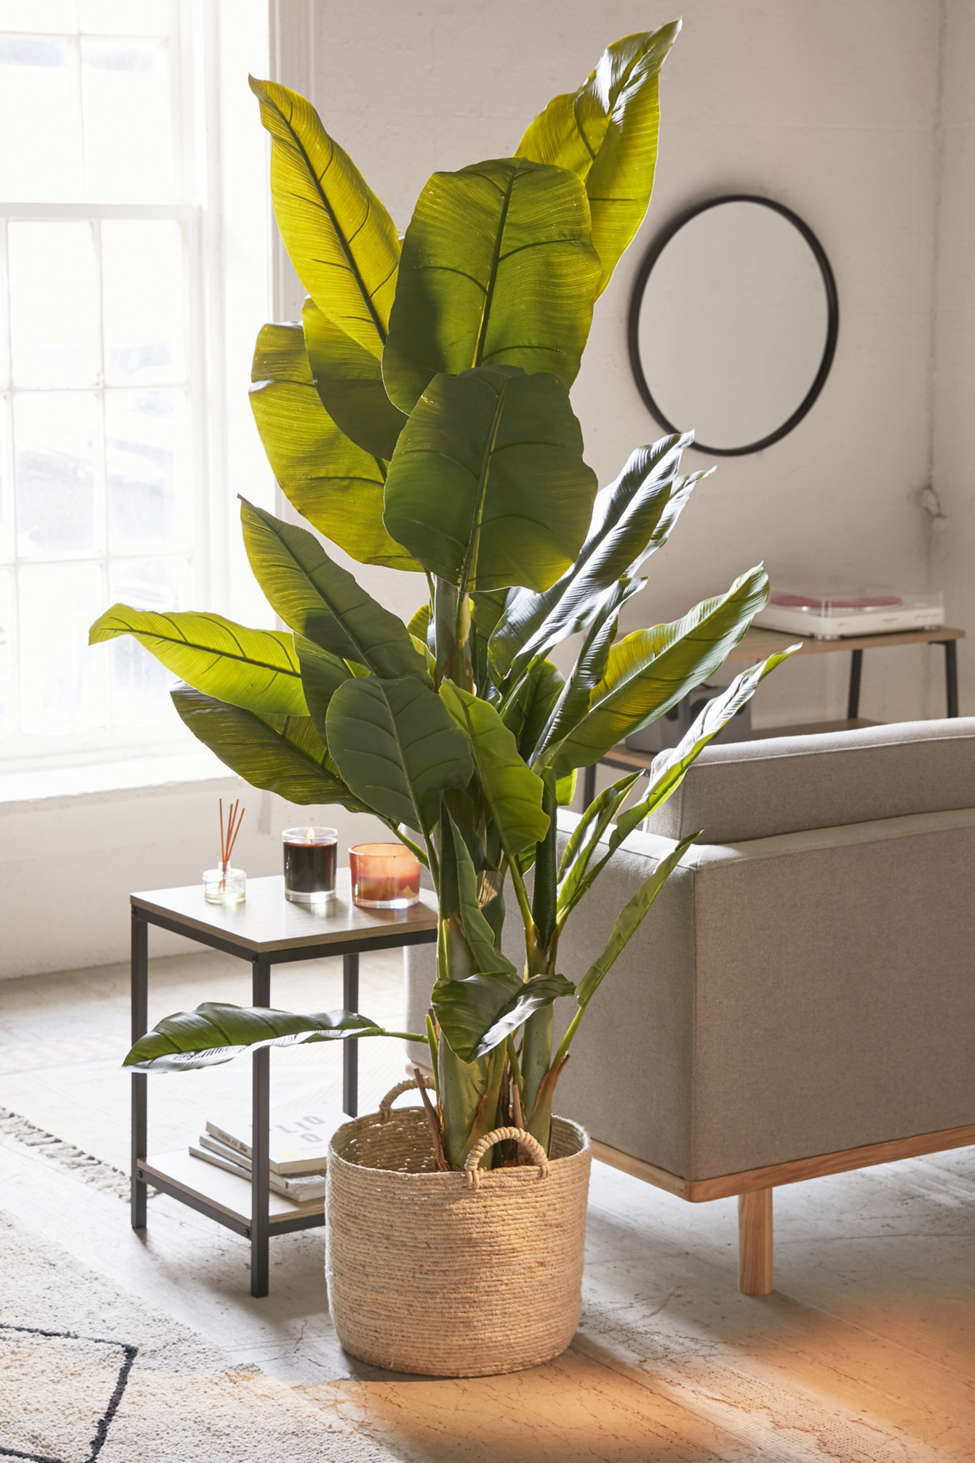 Slide View: 1: Potted Faux Banana Tree